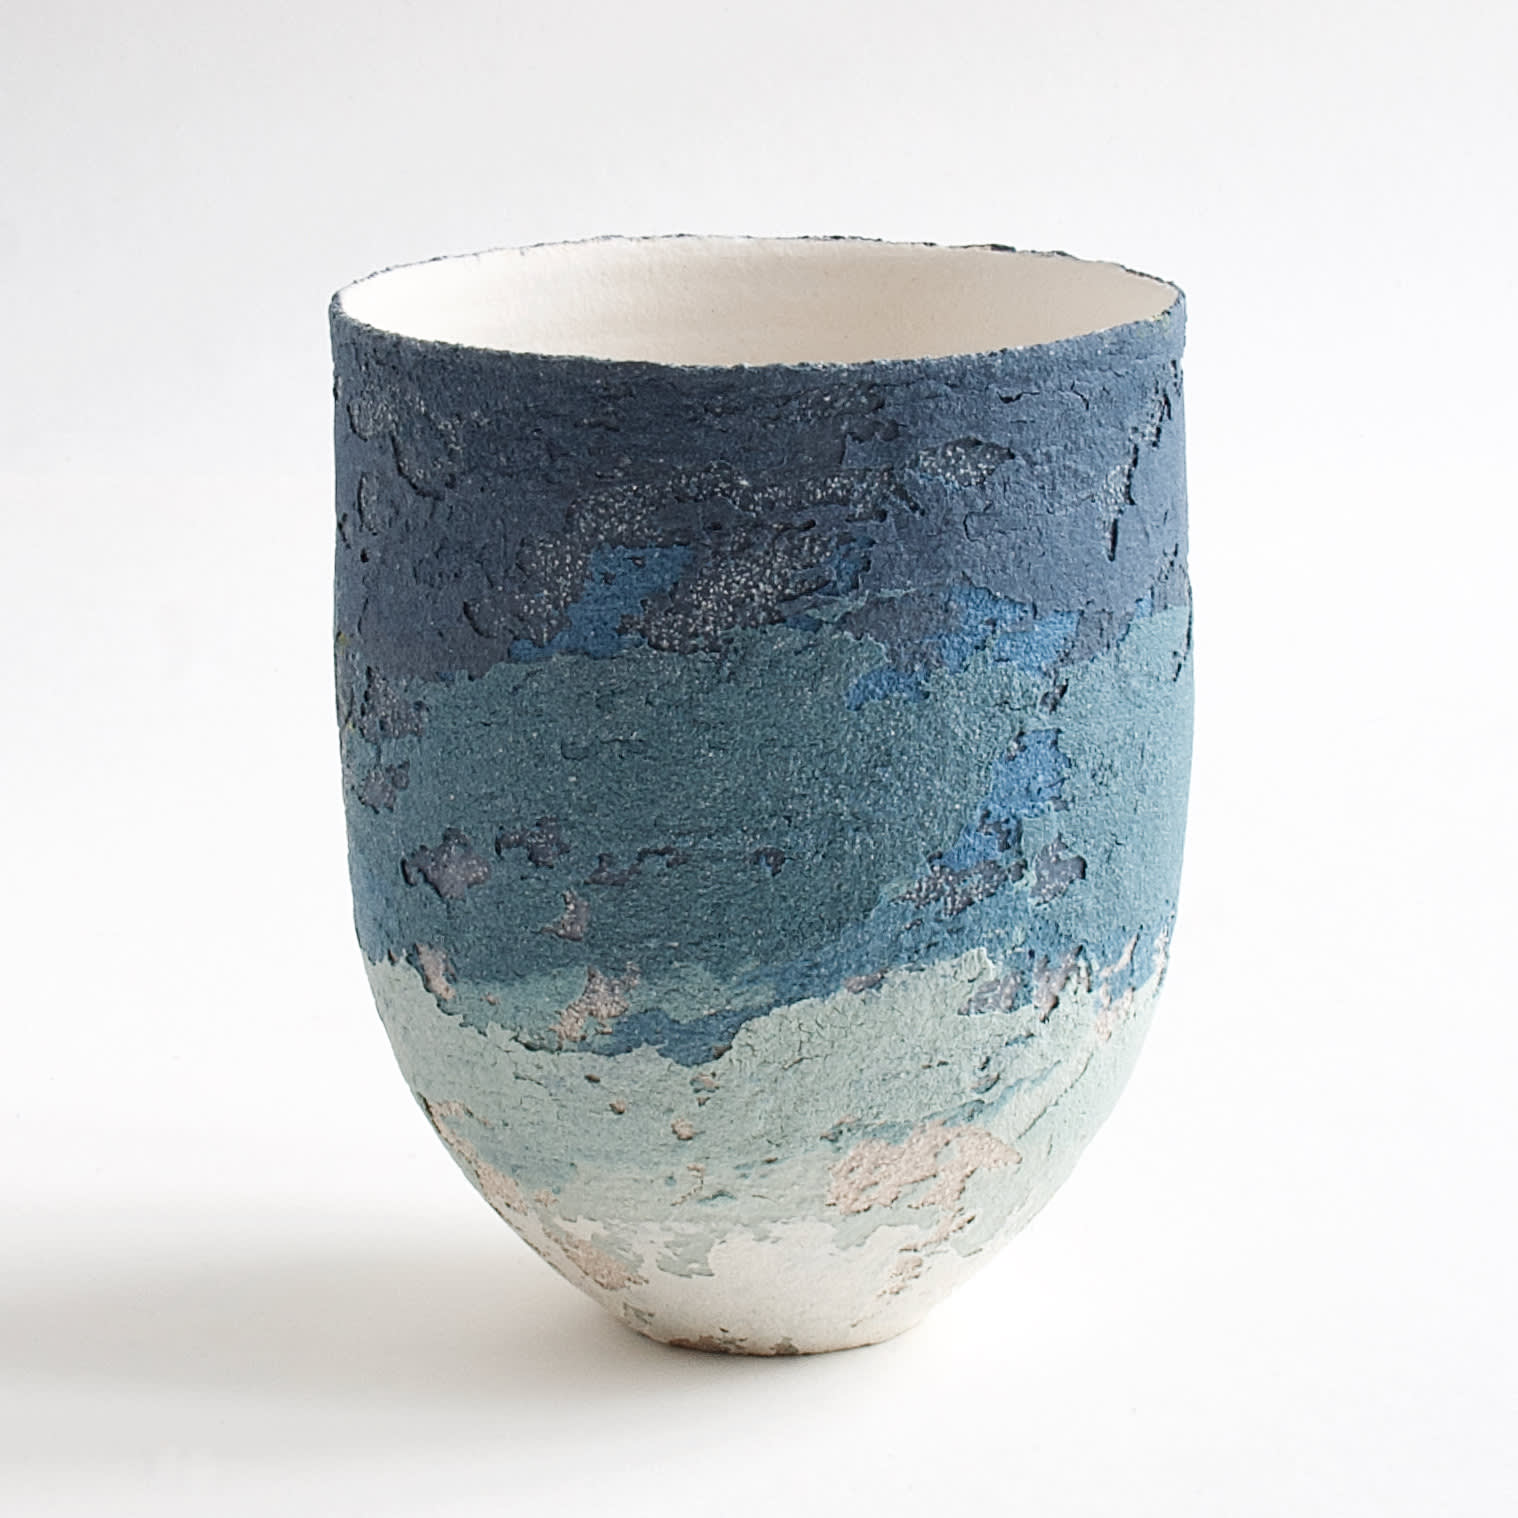 """<span class=""""link fancybox-details-link""""><a href=""""/artists/79-clare-conrad/works/8121-clare-conrad-vessel-white-interior-2021/"""">View Detail Page</a></span><div class=""""artist""""><strong>Clare Conrad</strong></div> b. 1948 <div class=""""title""""><em>Vessel, white interior</em>, 2021</div> <div class=""""medium"""">wheel-thrown stoneware </div> <div class=""""dimensions"""">h. 11.5 cm </div><div class=""""price"""">£132.00</div><div class=""""copyright_line"""">Own Art: £13.20 x 10 Months, 0% APR</div>"""